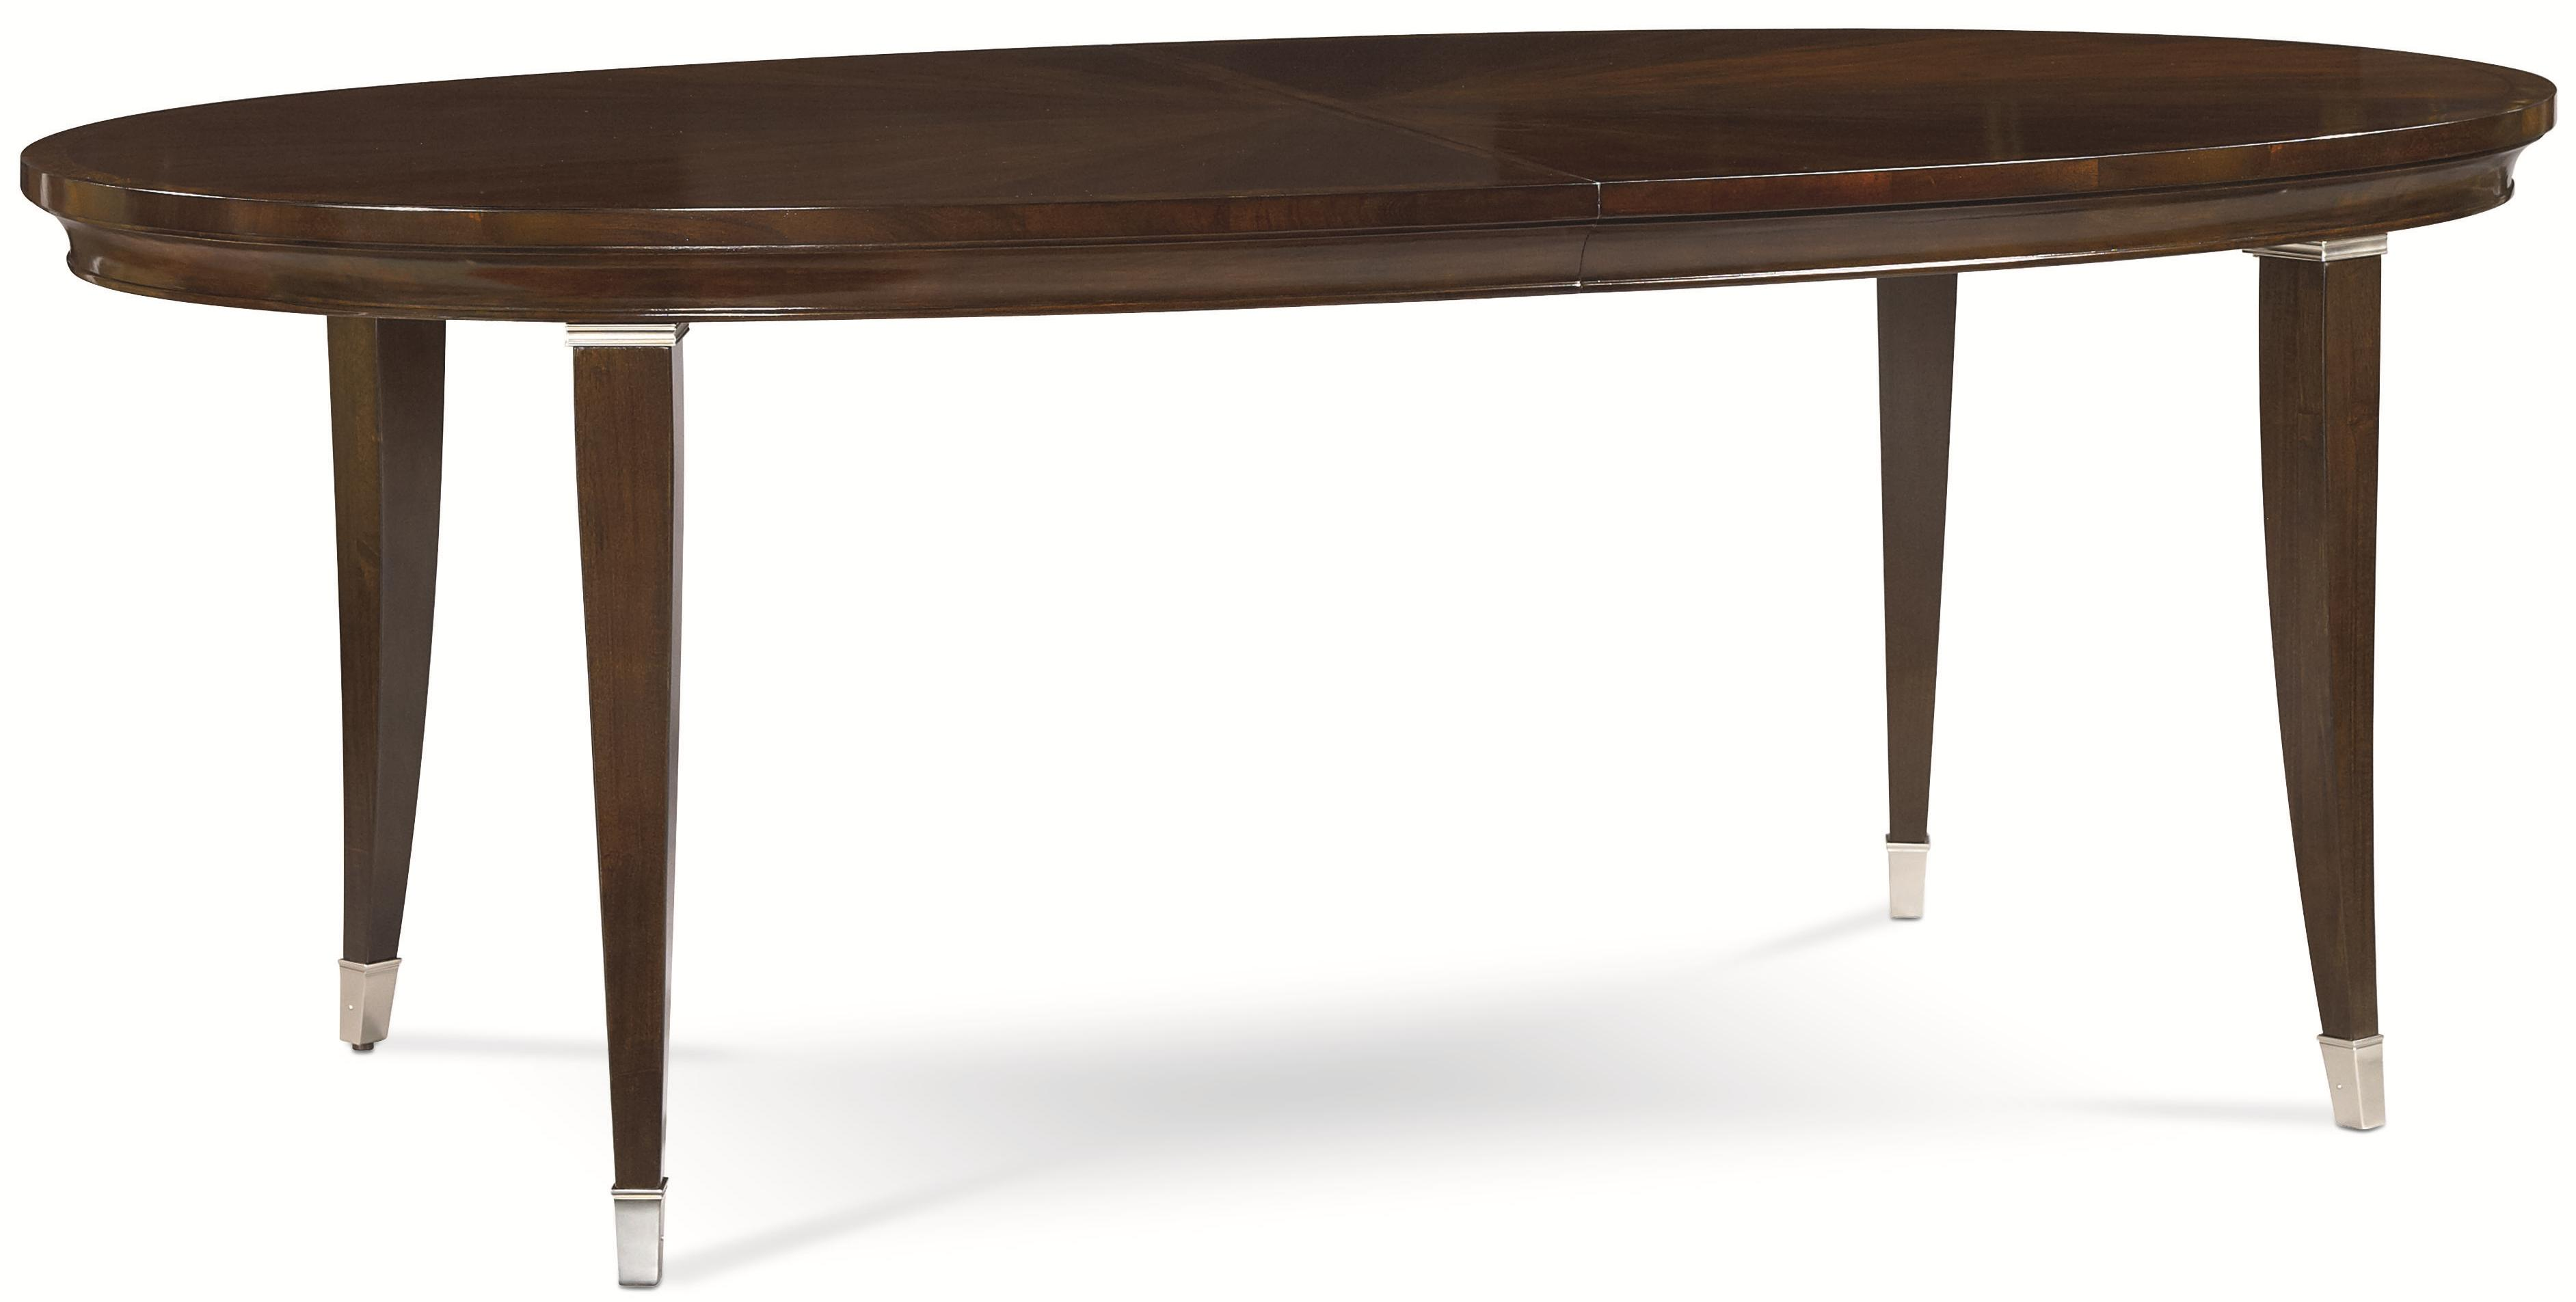 Thomasville spellbound 82221 751 oval dining table w for Dining room tables thomasville